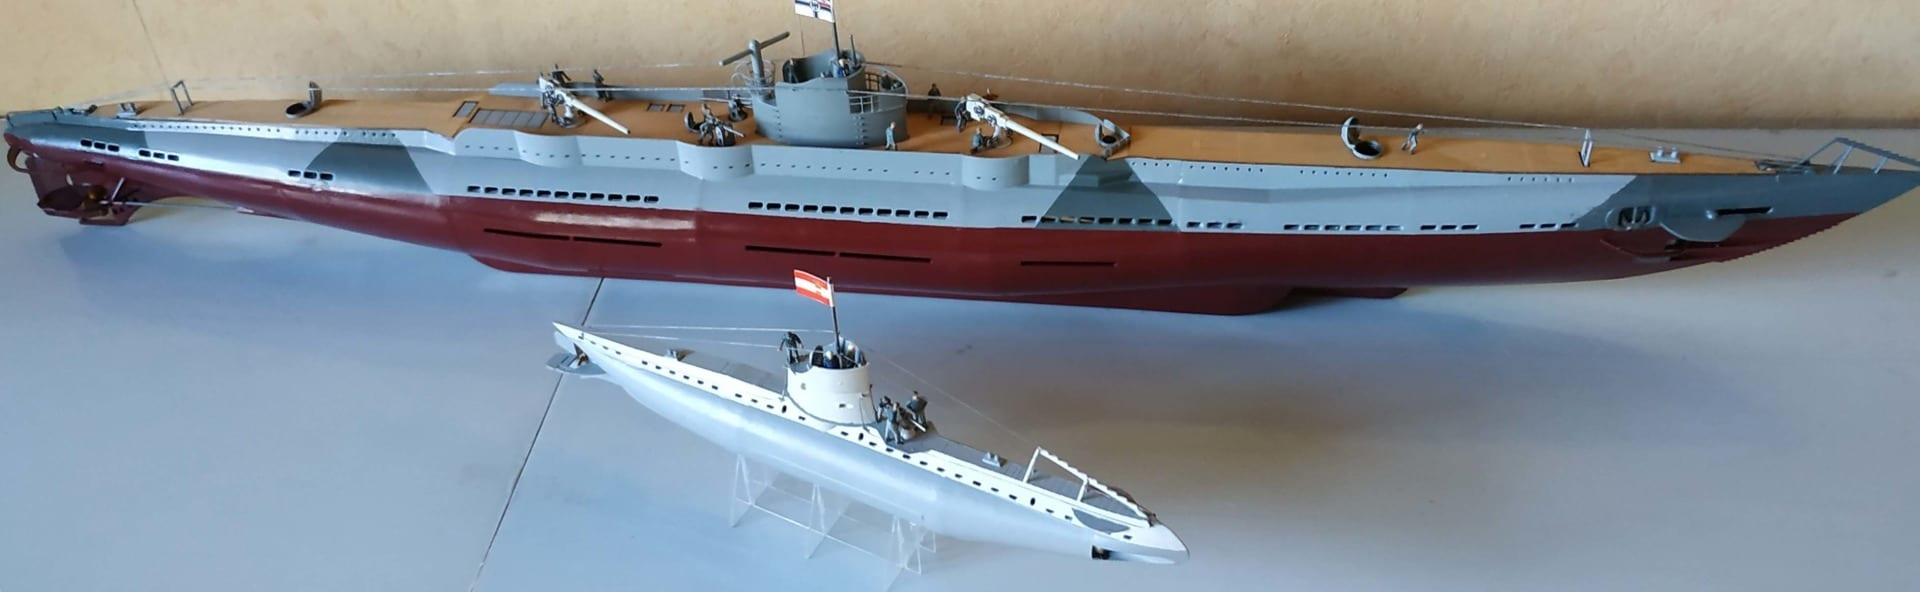 World War One U Boats model kits in 1:72 scale